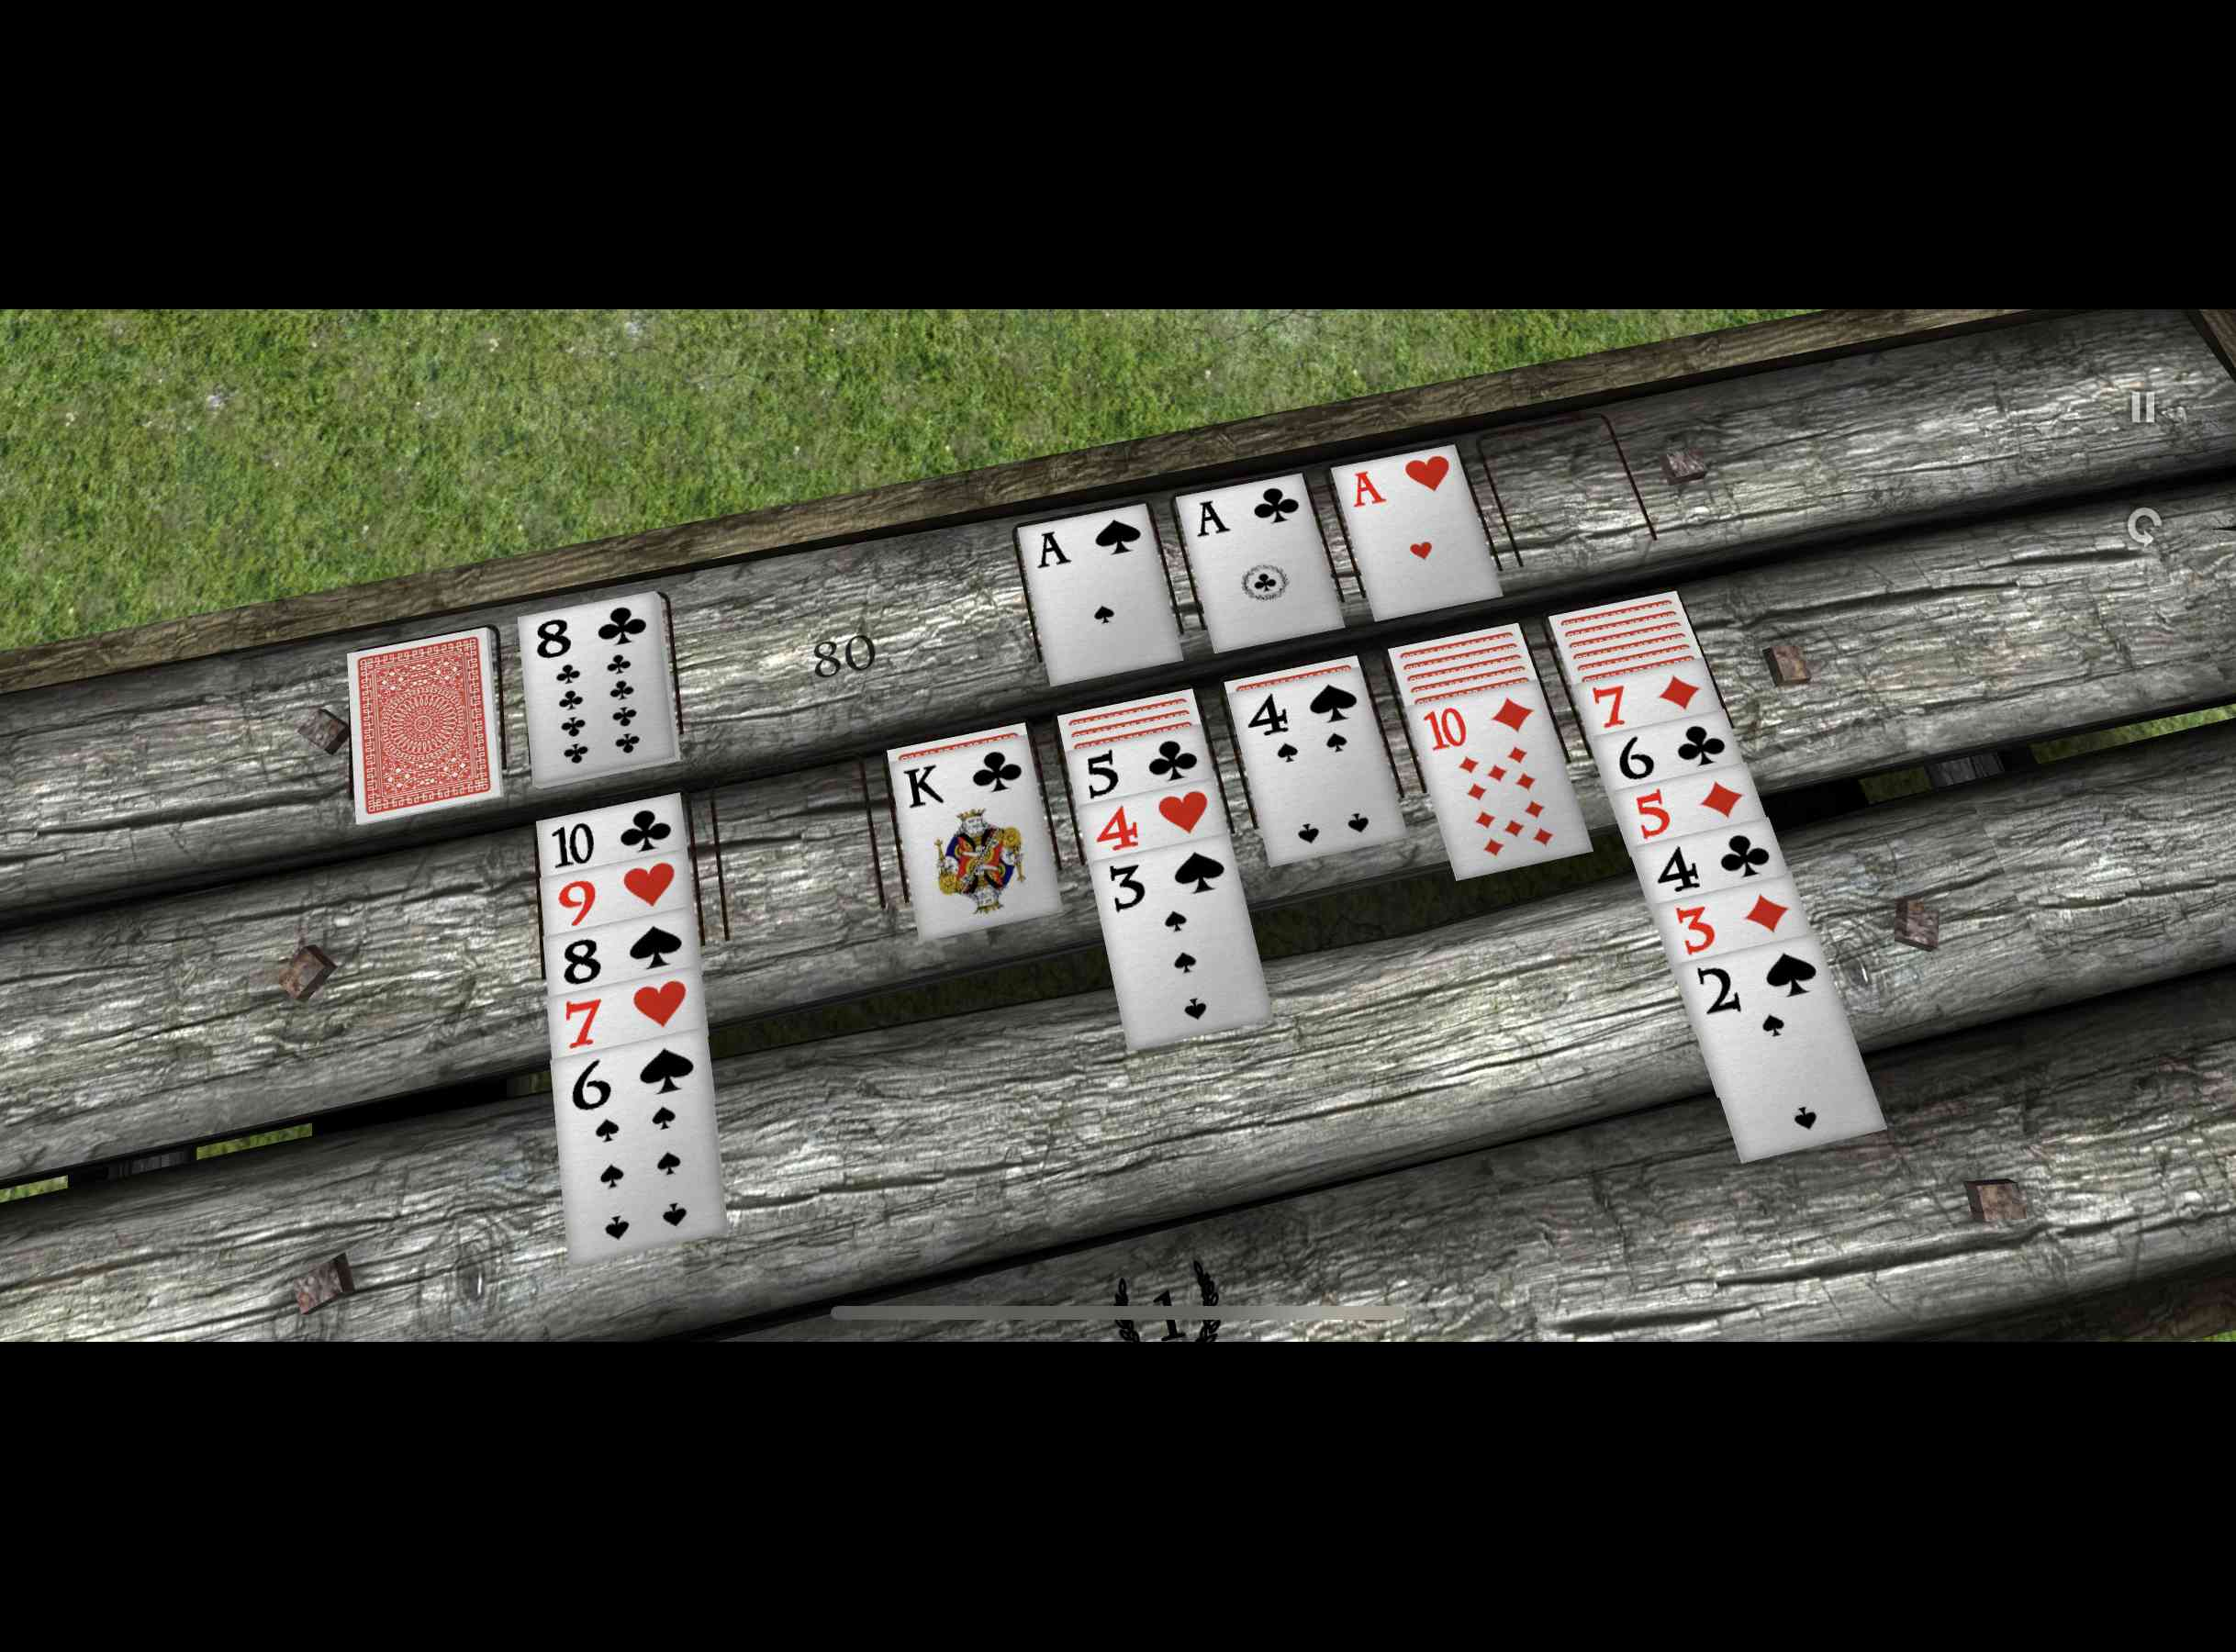 Solitaire Zen virtual reality card game on iPhone.